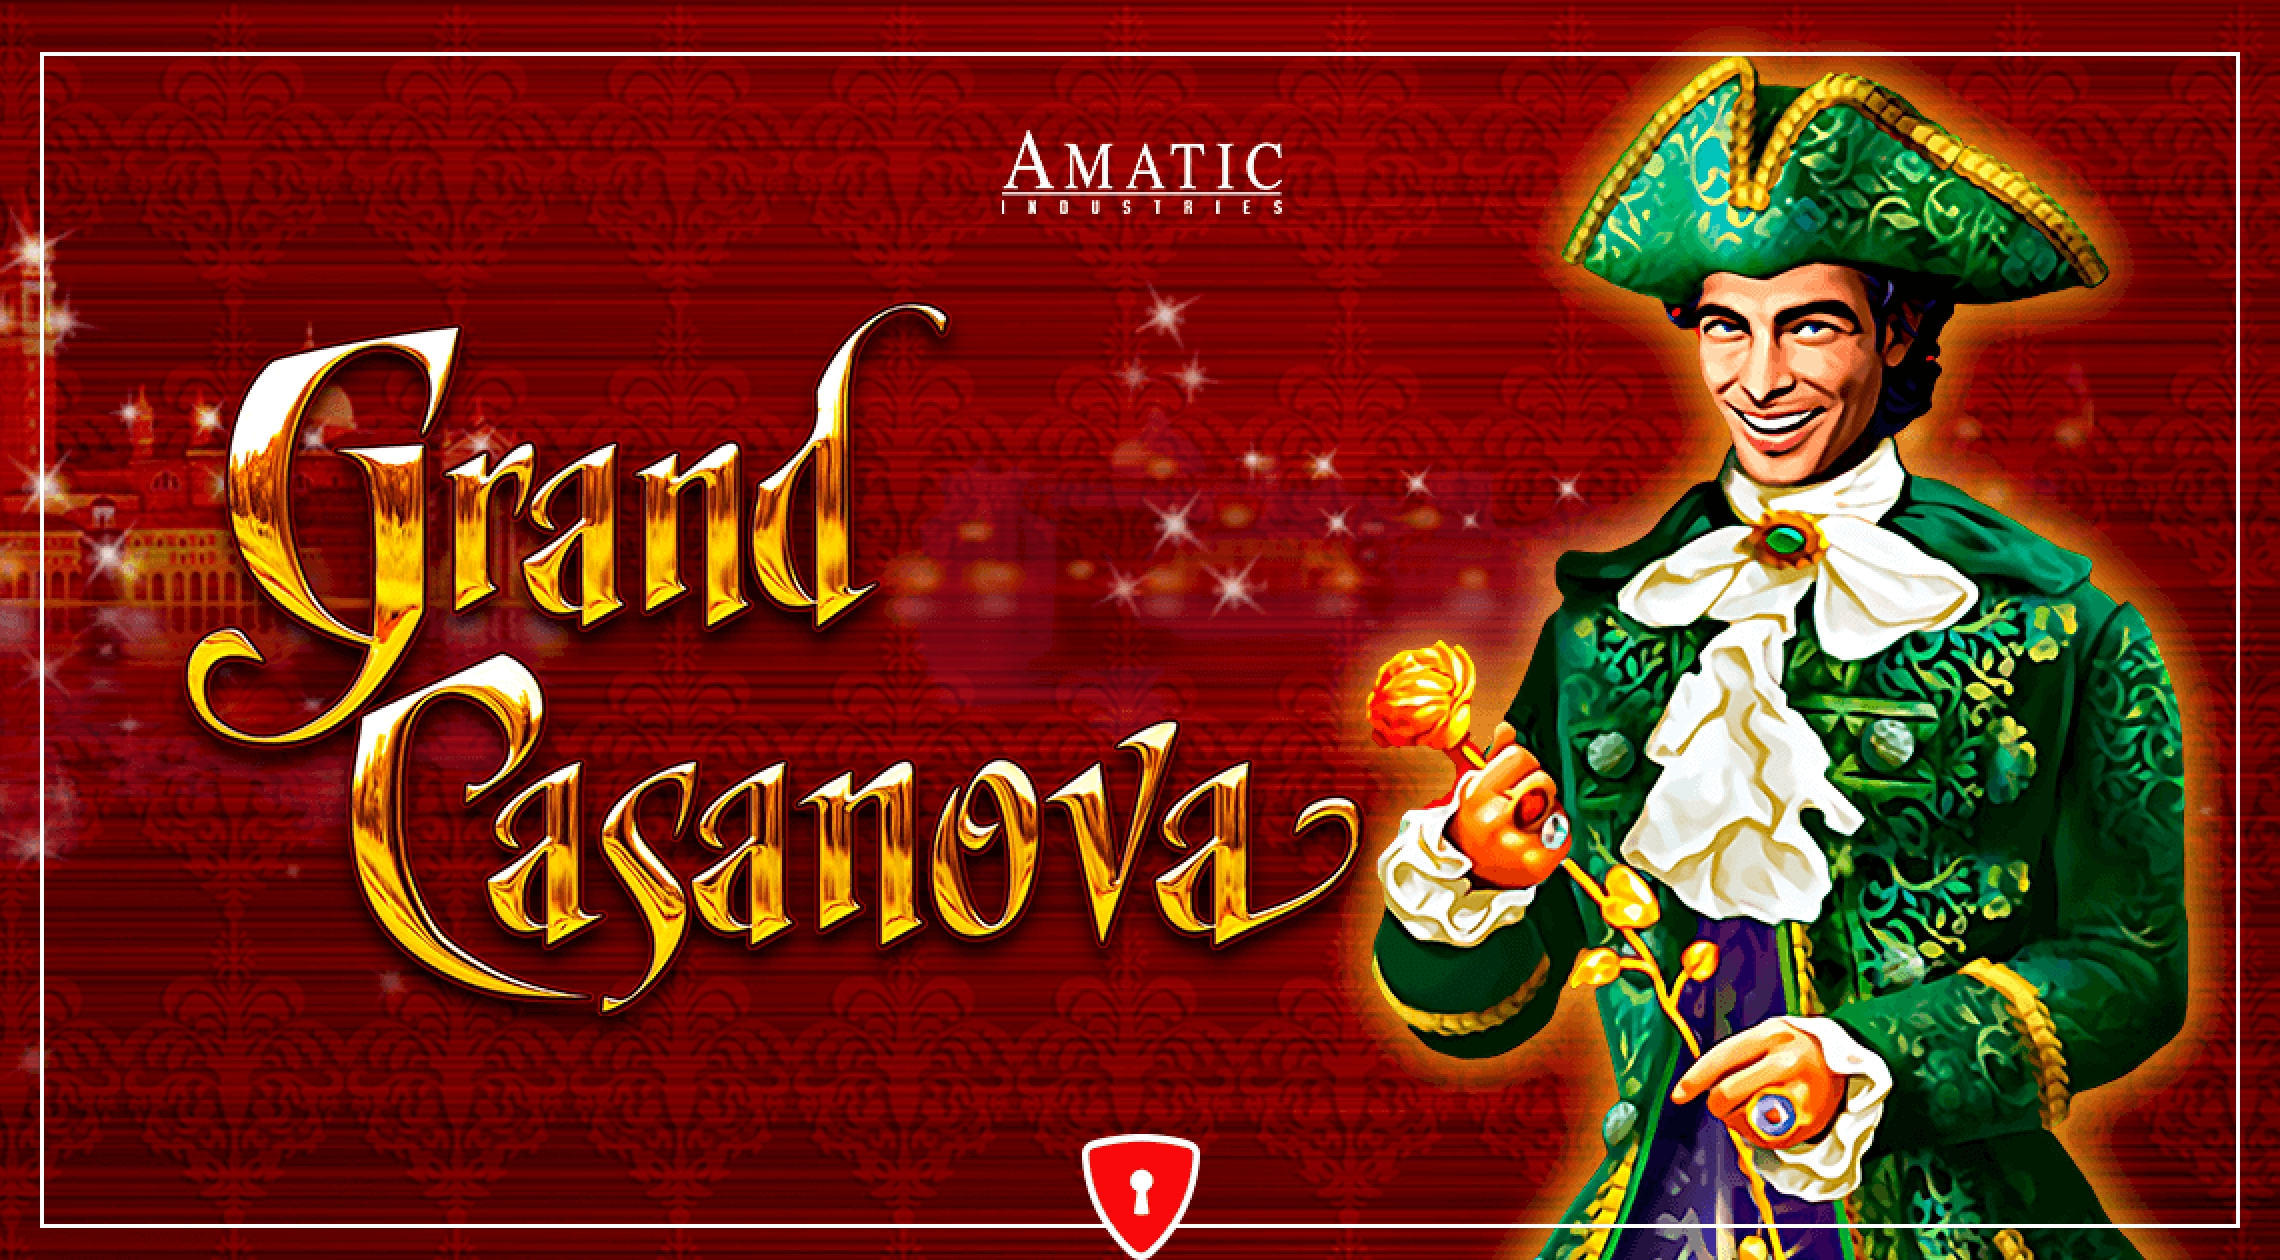 The Grand Casanova Online Slot Demo Game by Amatic Industries